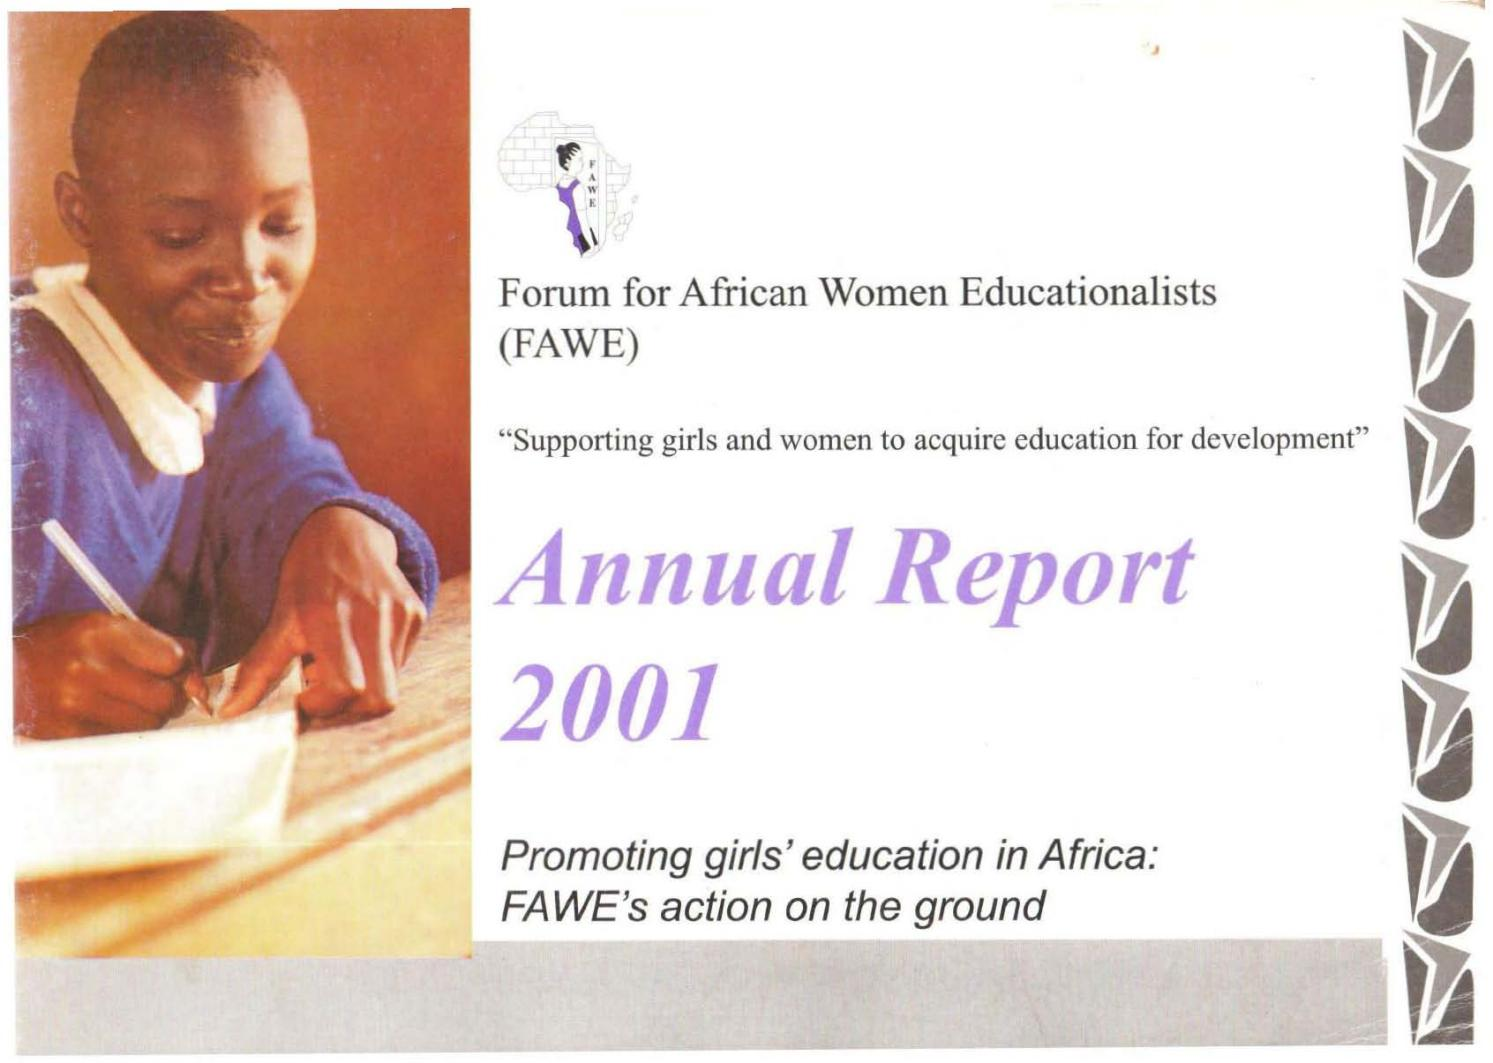 FAWE Annual Report 2001 By Forum For African Women Educationalists